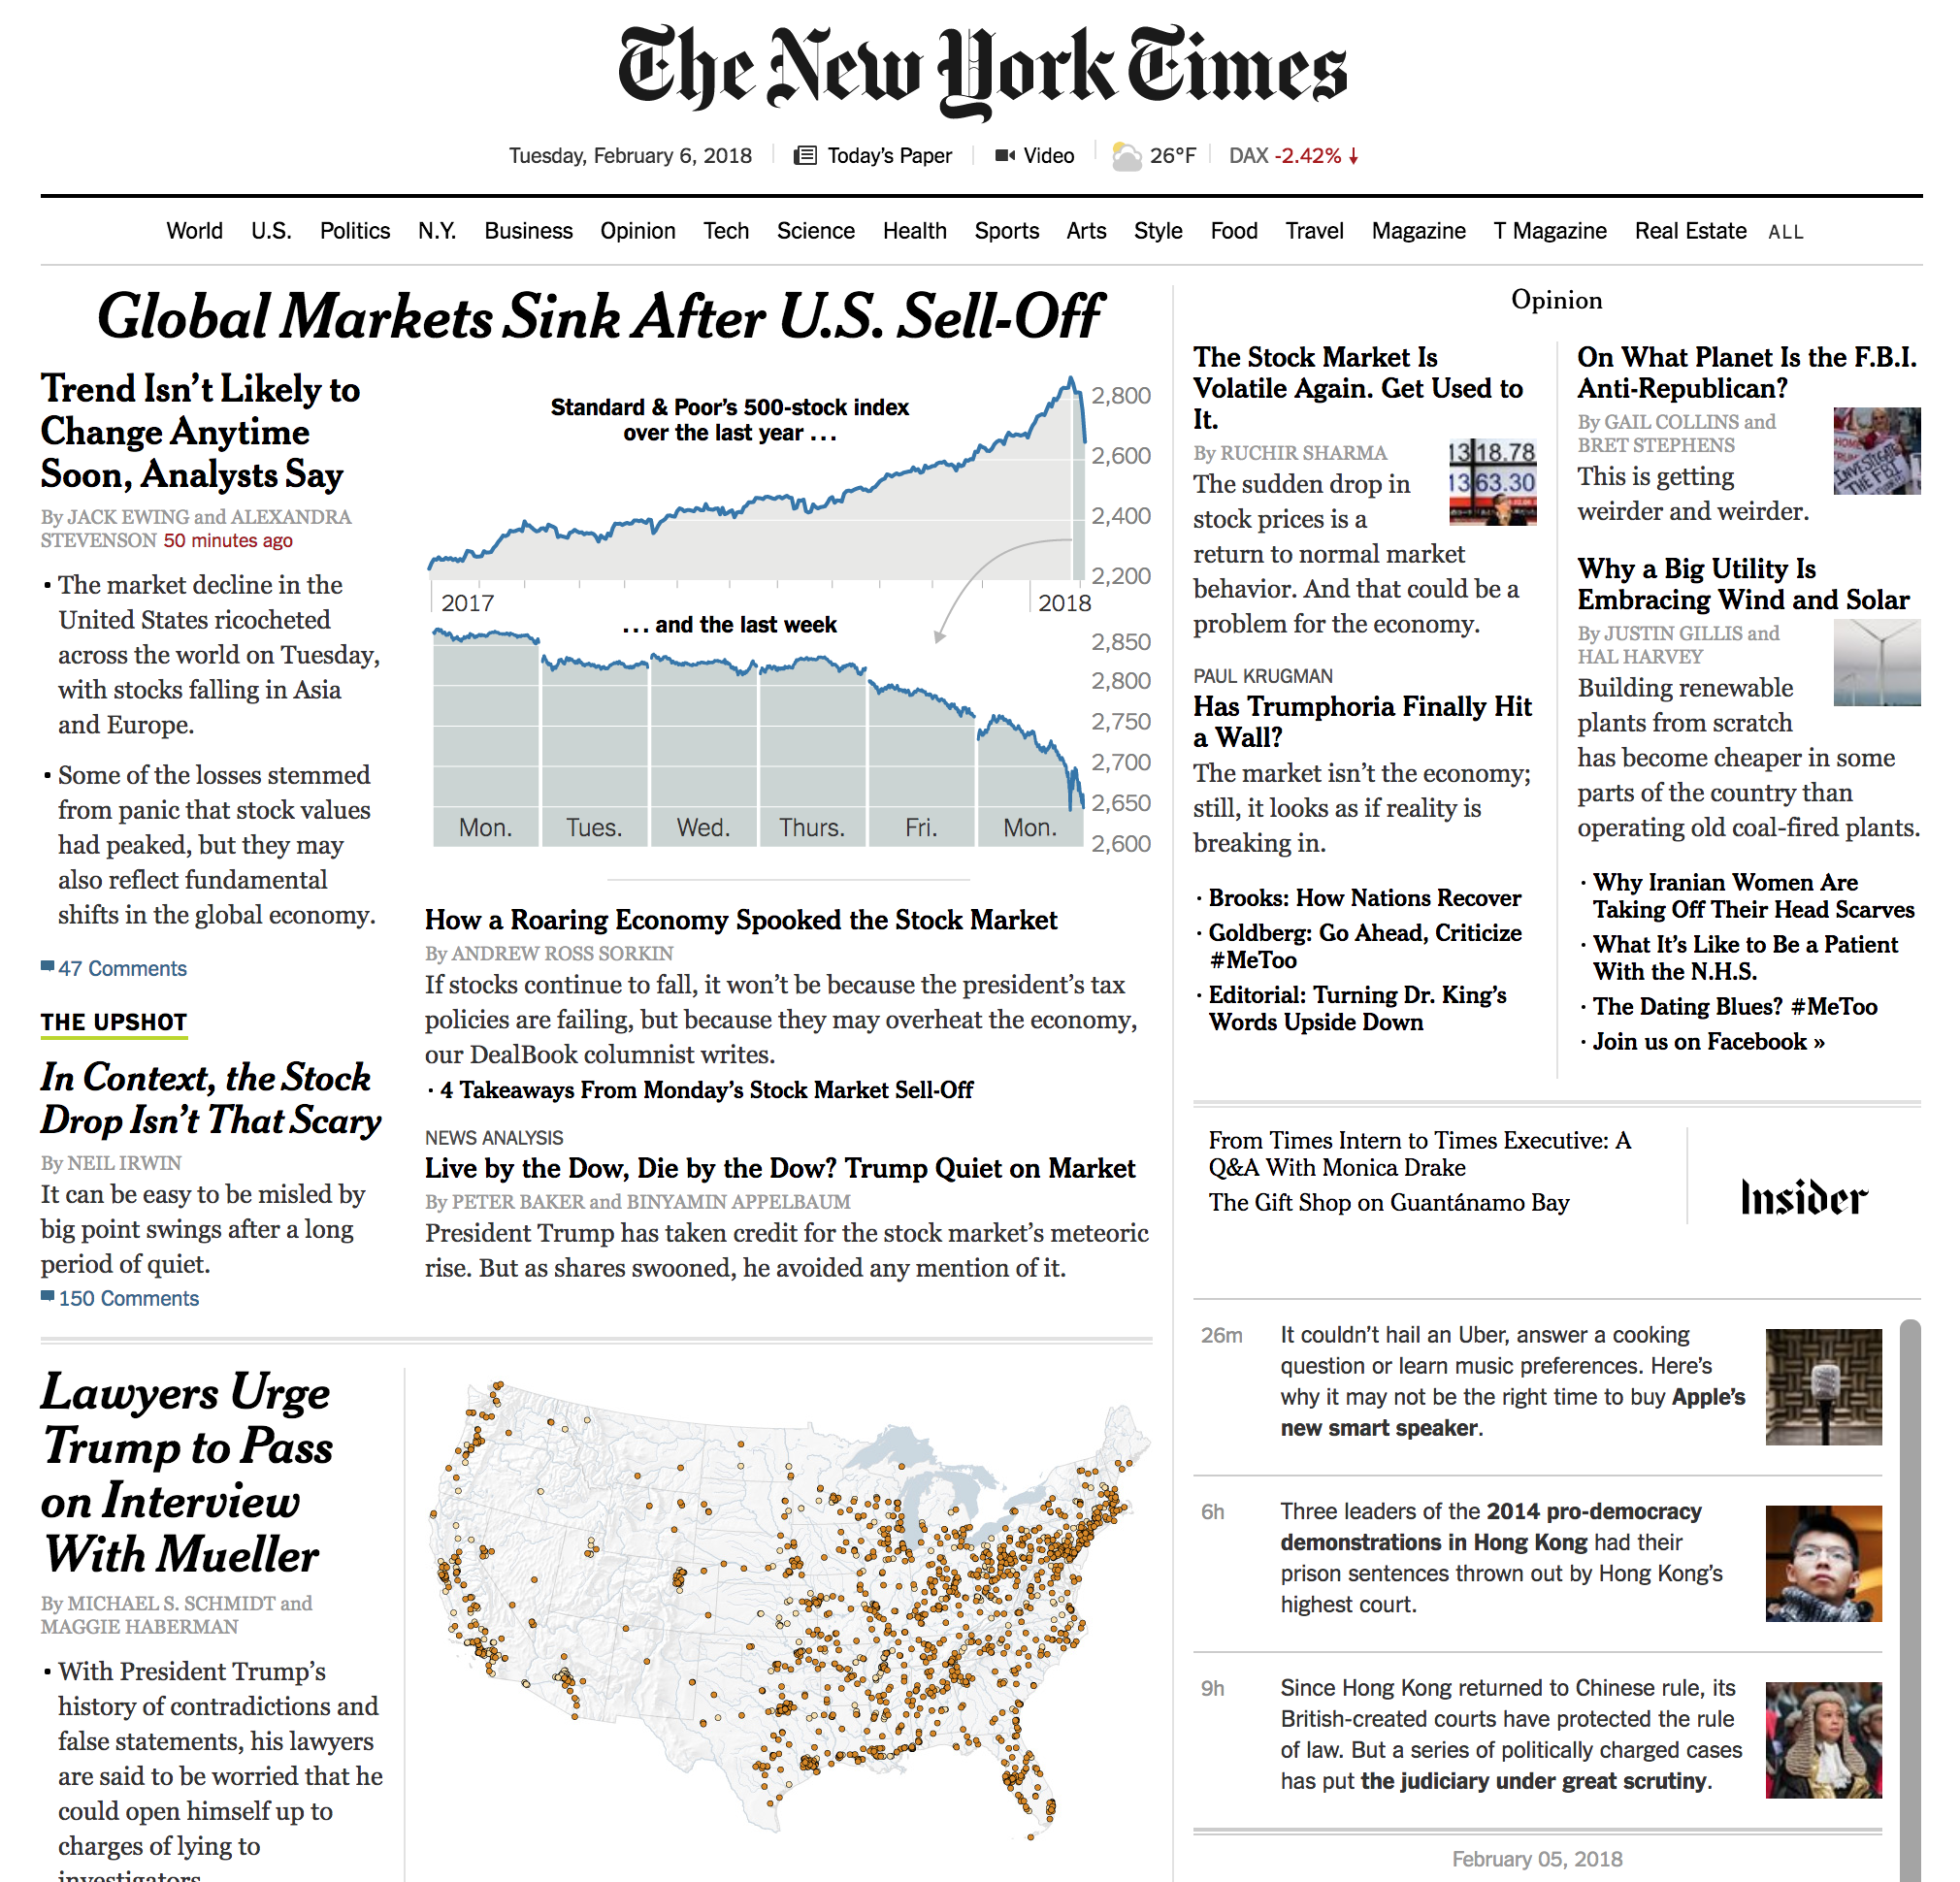 The New York Times homepage this morning